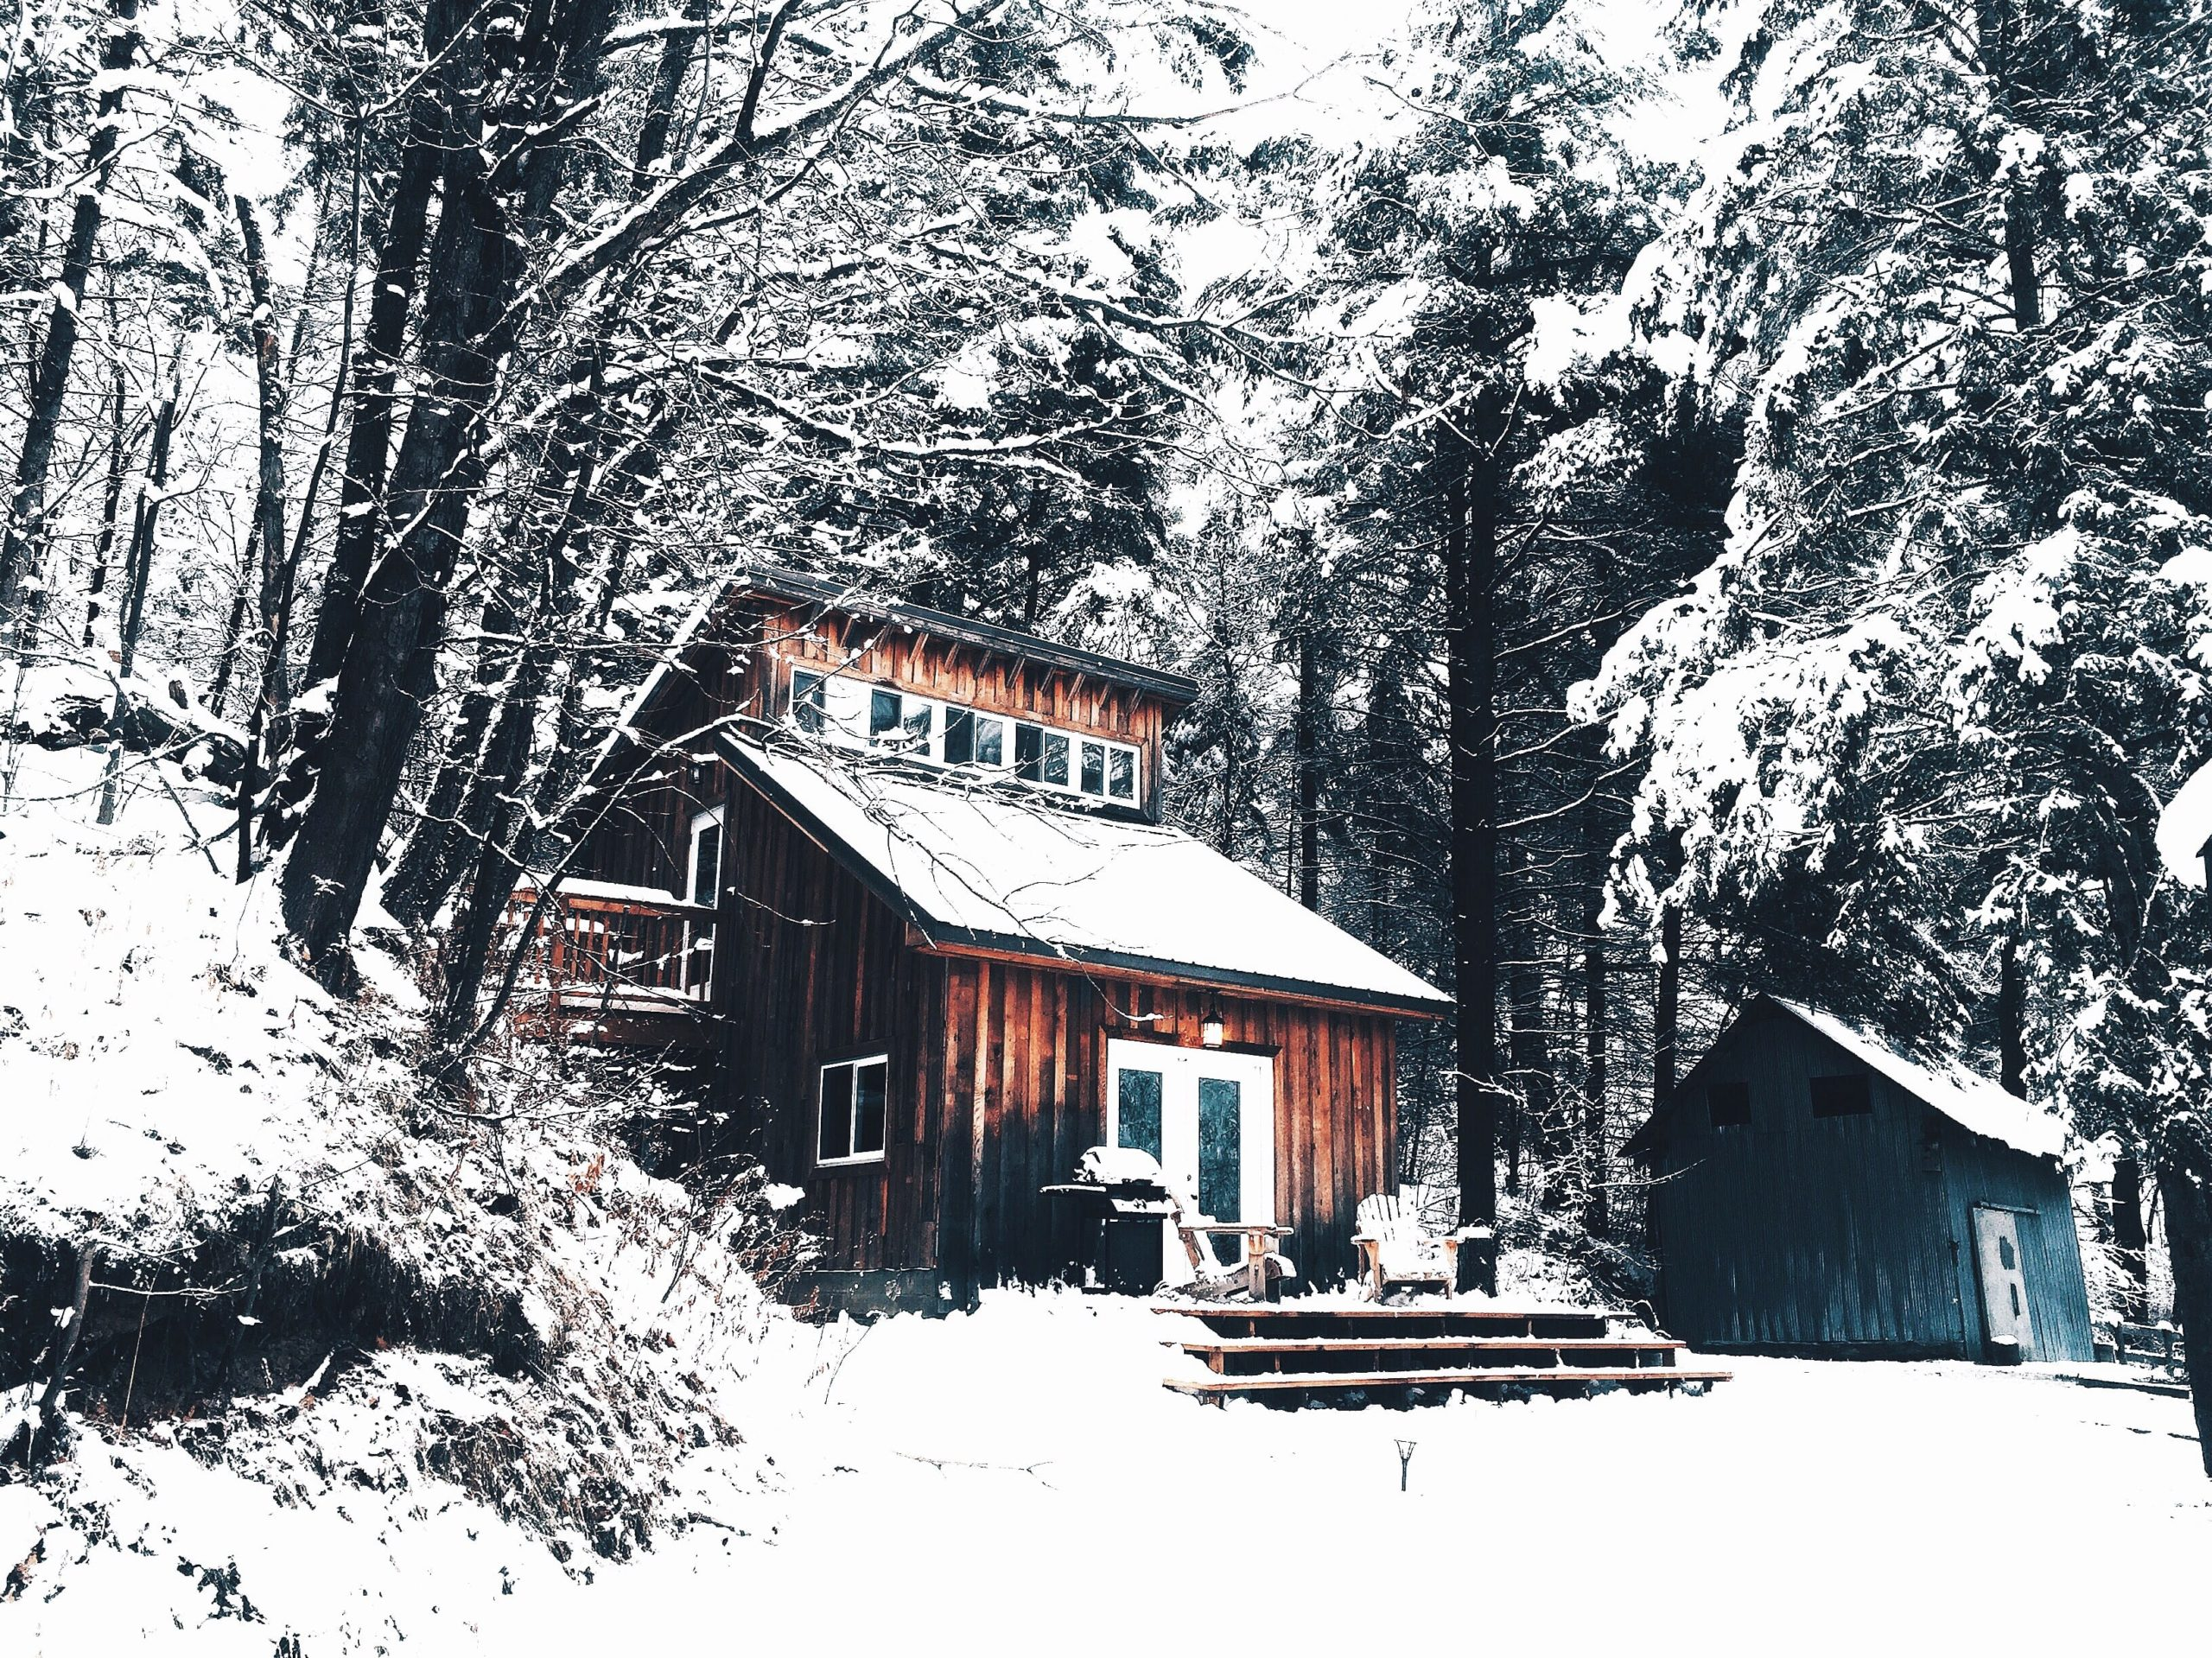 Winter scene of a snow covered house or cottage surrounded by trees